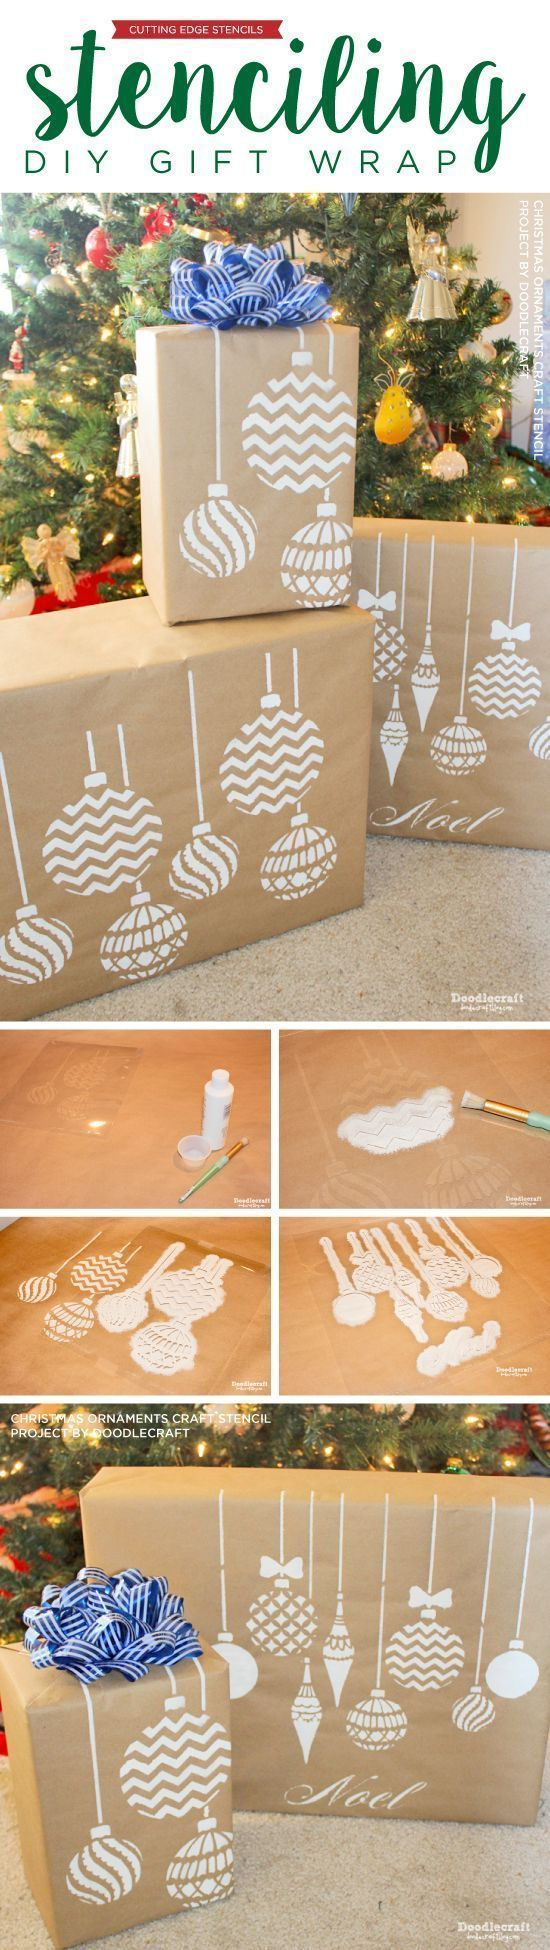 Cutting Edge Stencils shares how to stencil DIY gift wrap ...